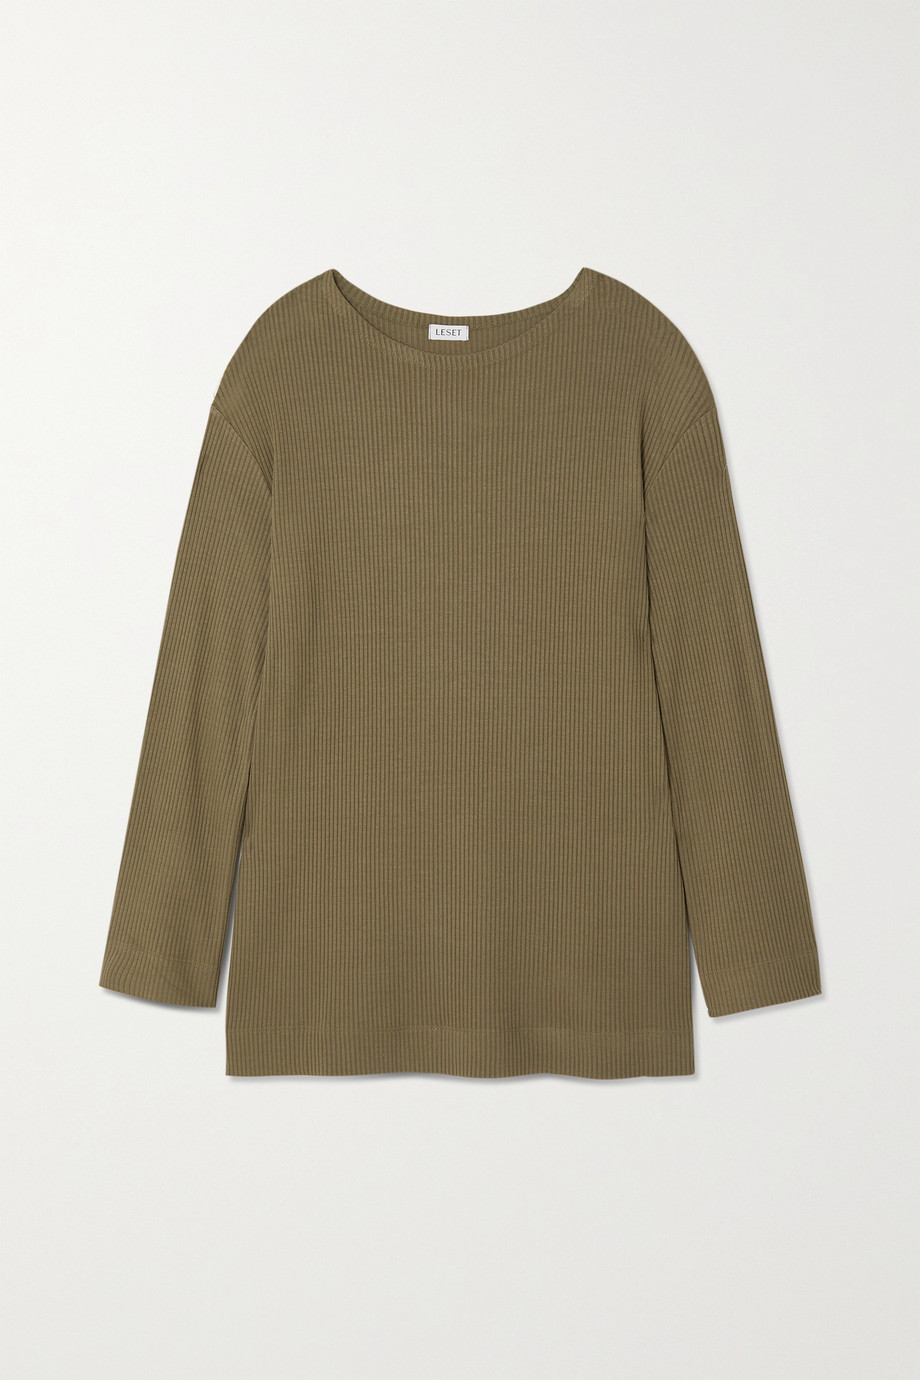 LESET Ali ribbed stretch-knit top